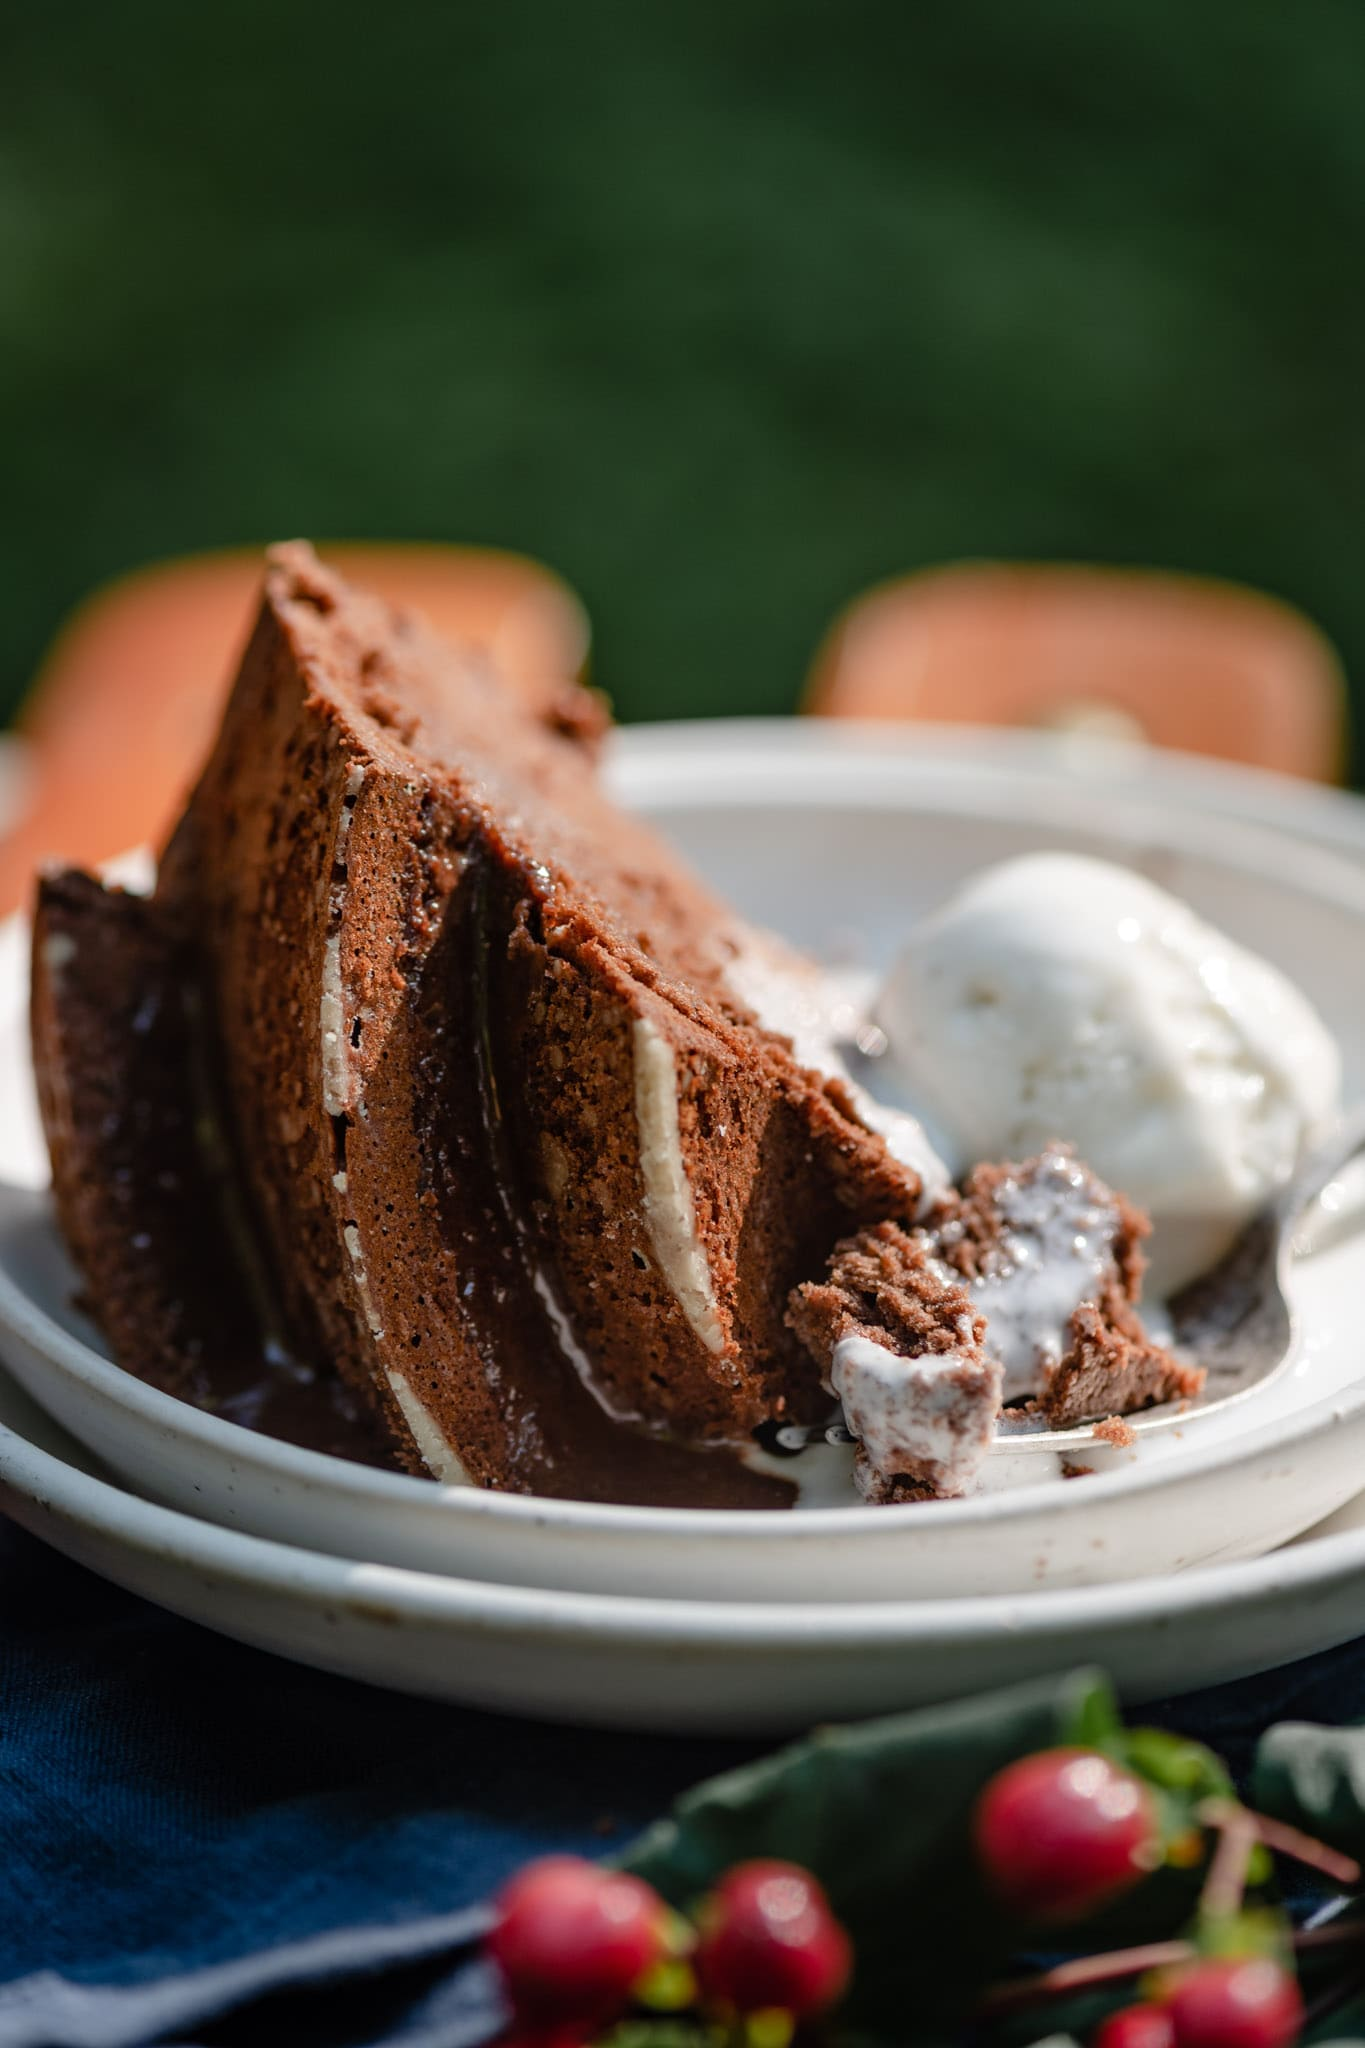 Summer cookout with cake and ice cream.